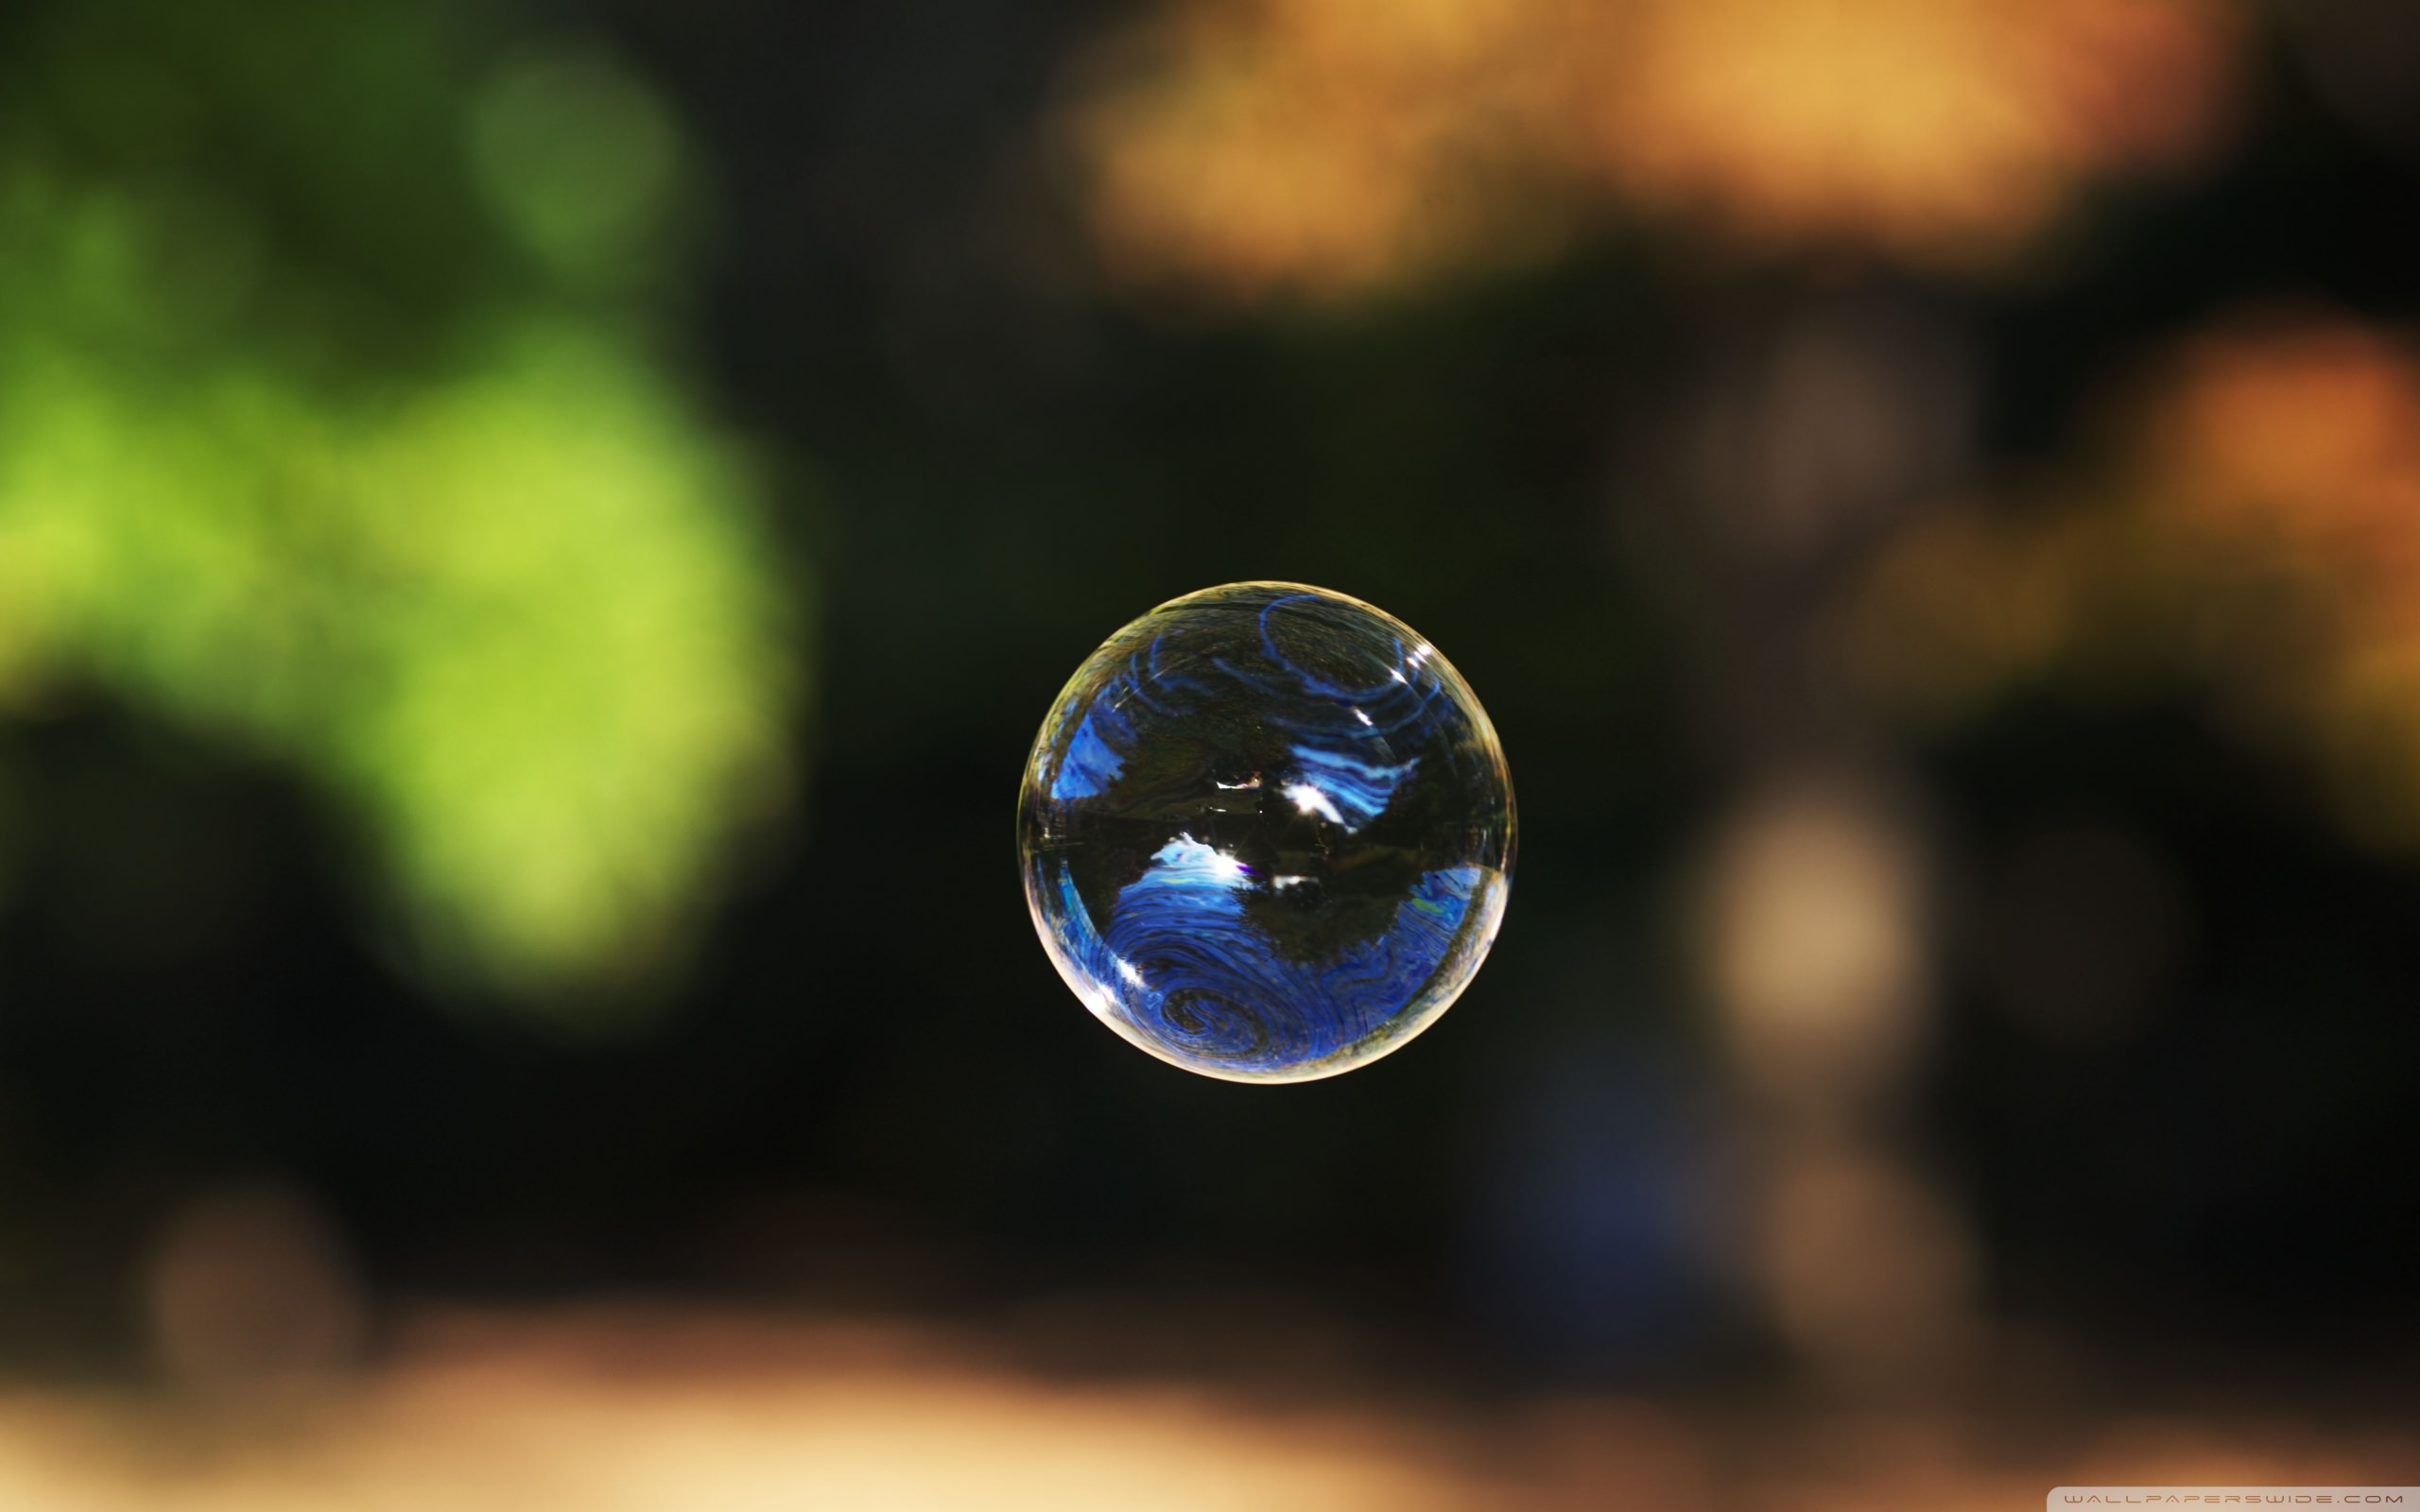 3d Bubbles Wallpaper: 20+ Bubble Desktop Wallpapers, Backgrounds, Images